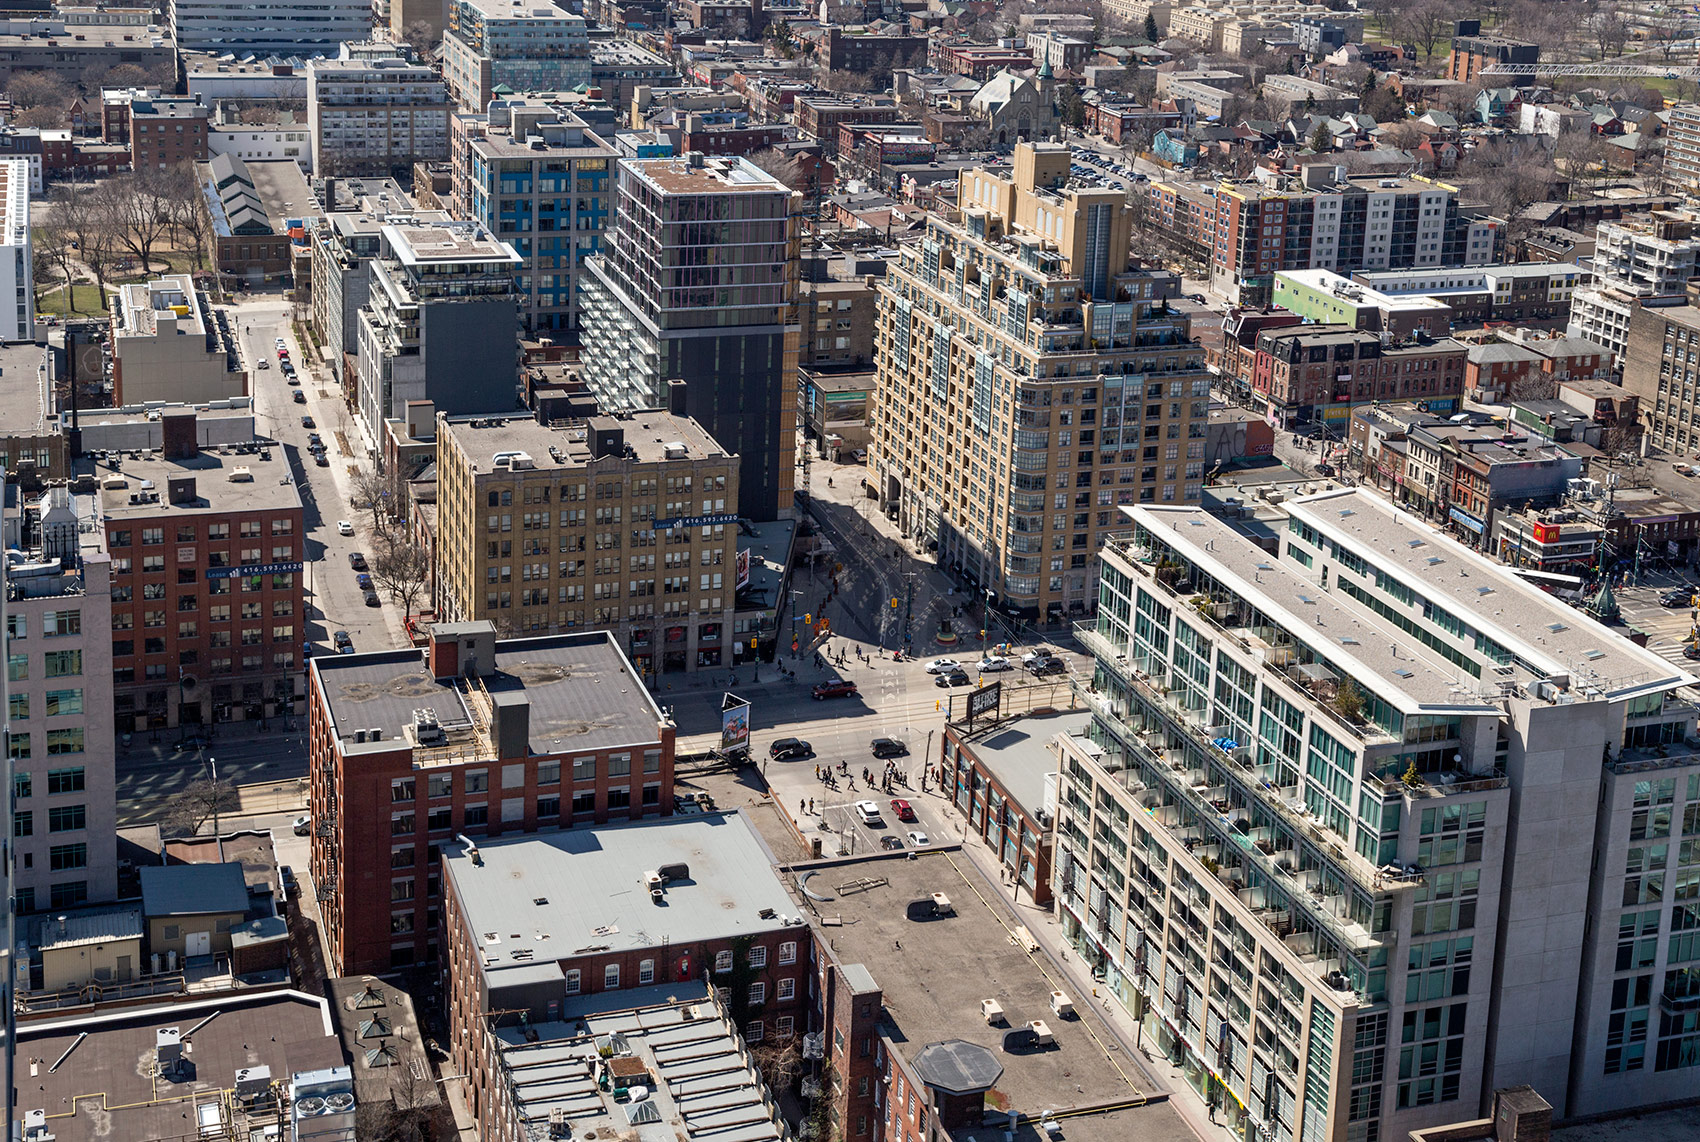 20160512. An aerial view of Toronto's Fashion District and the n